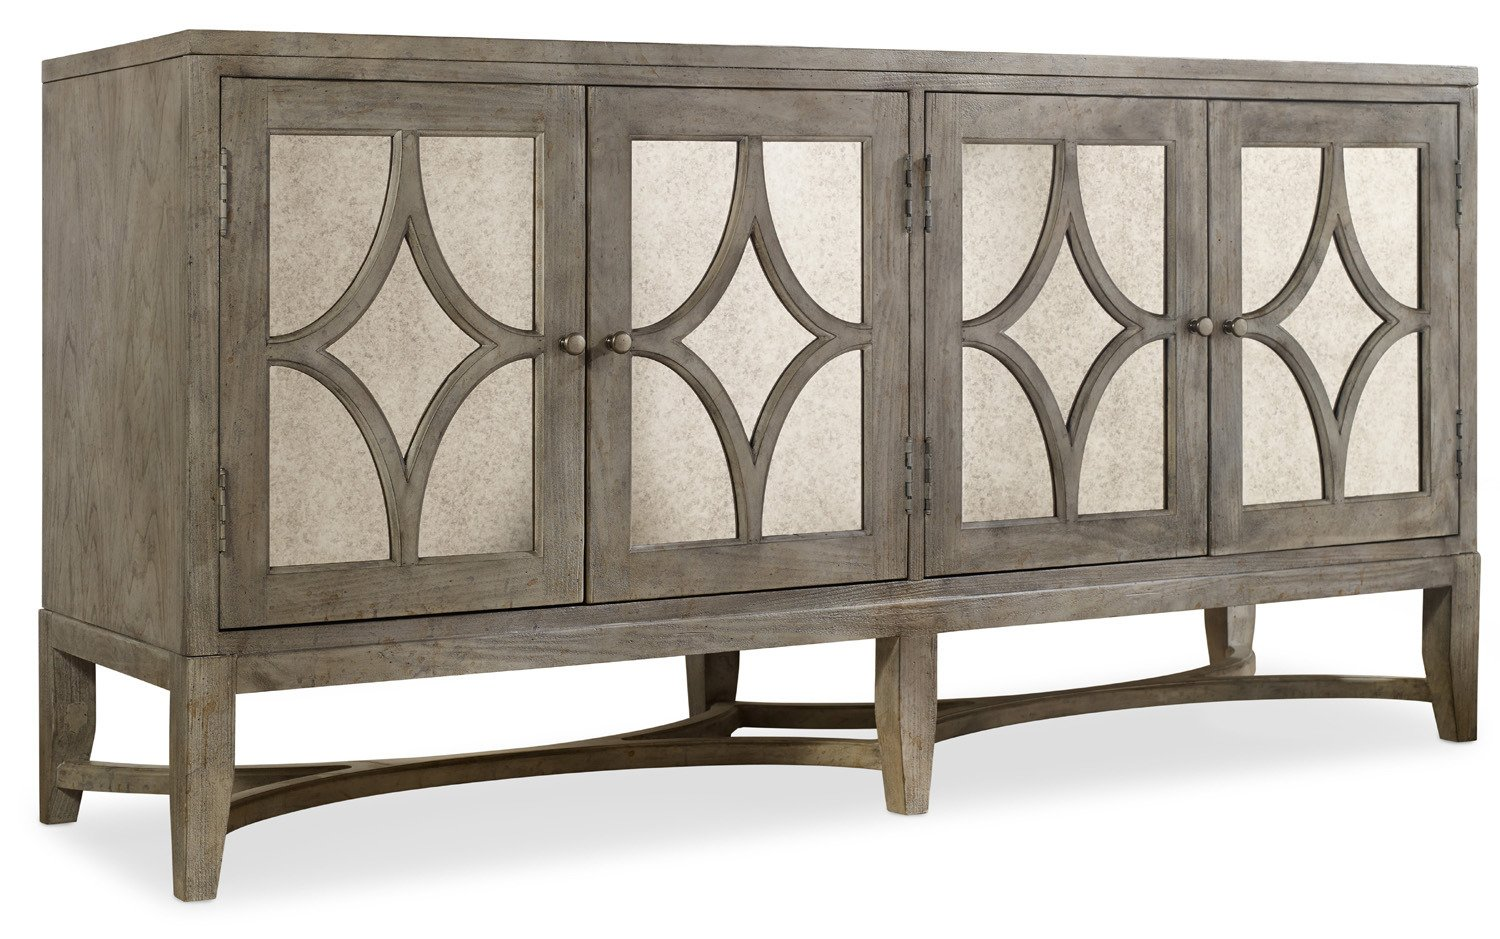 Amazon hooker furniture melange 4 door diamante console in amazon hooker furniture melange 4 door diamante console in weathered gray kitchen dining geotapseo Choice Image